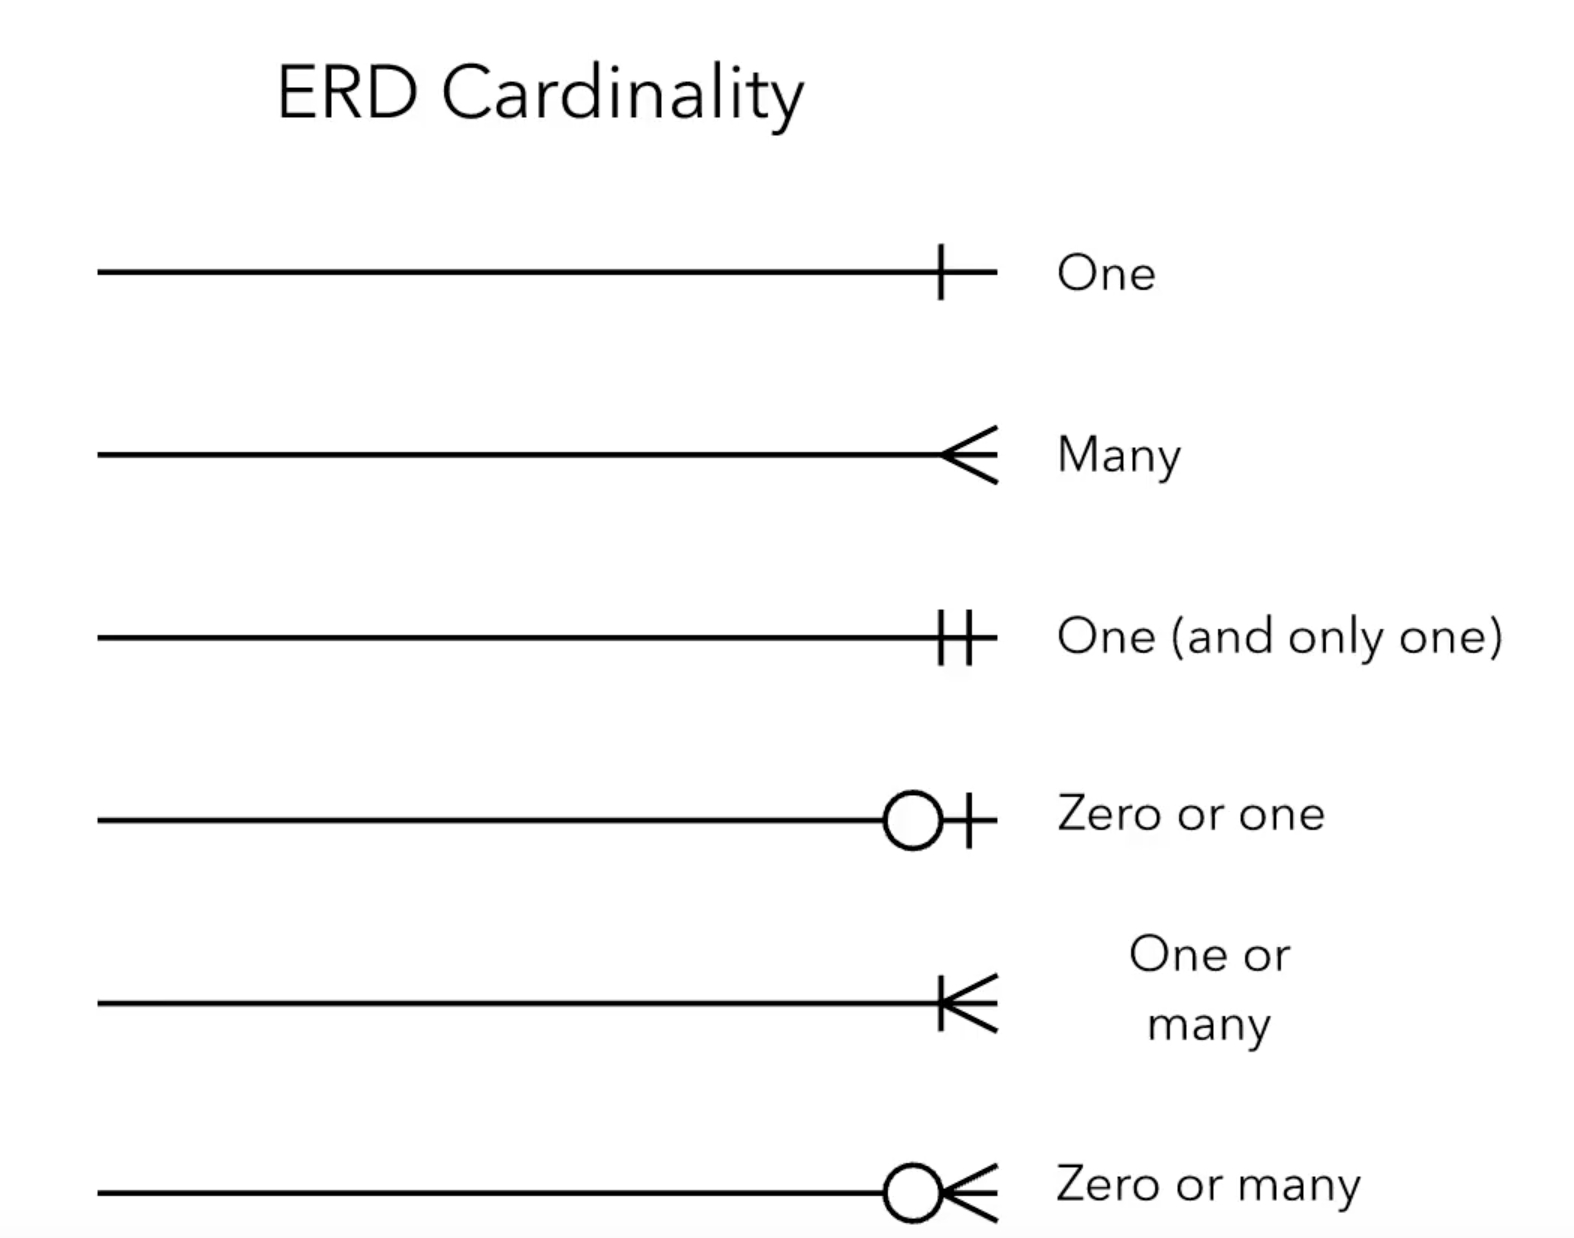 Er Diagram - Are The Relations And Cardinalities Correct pertaining to Er Diagram Legend